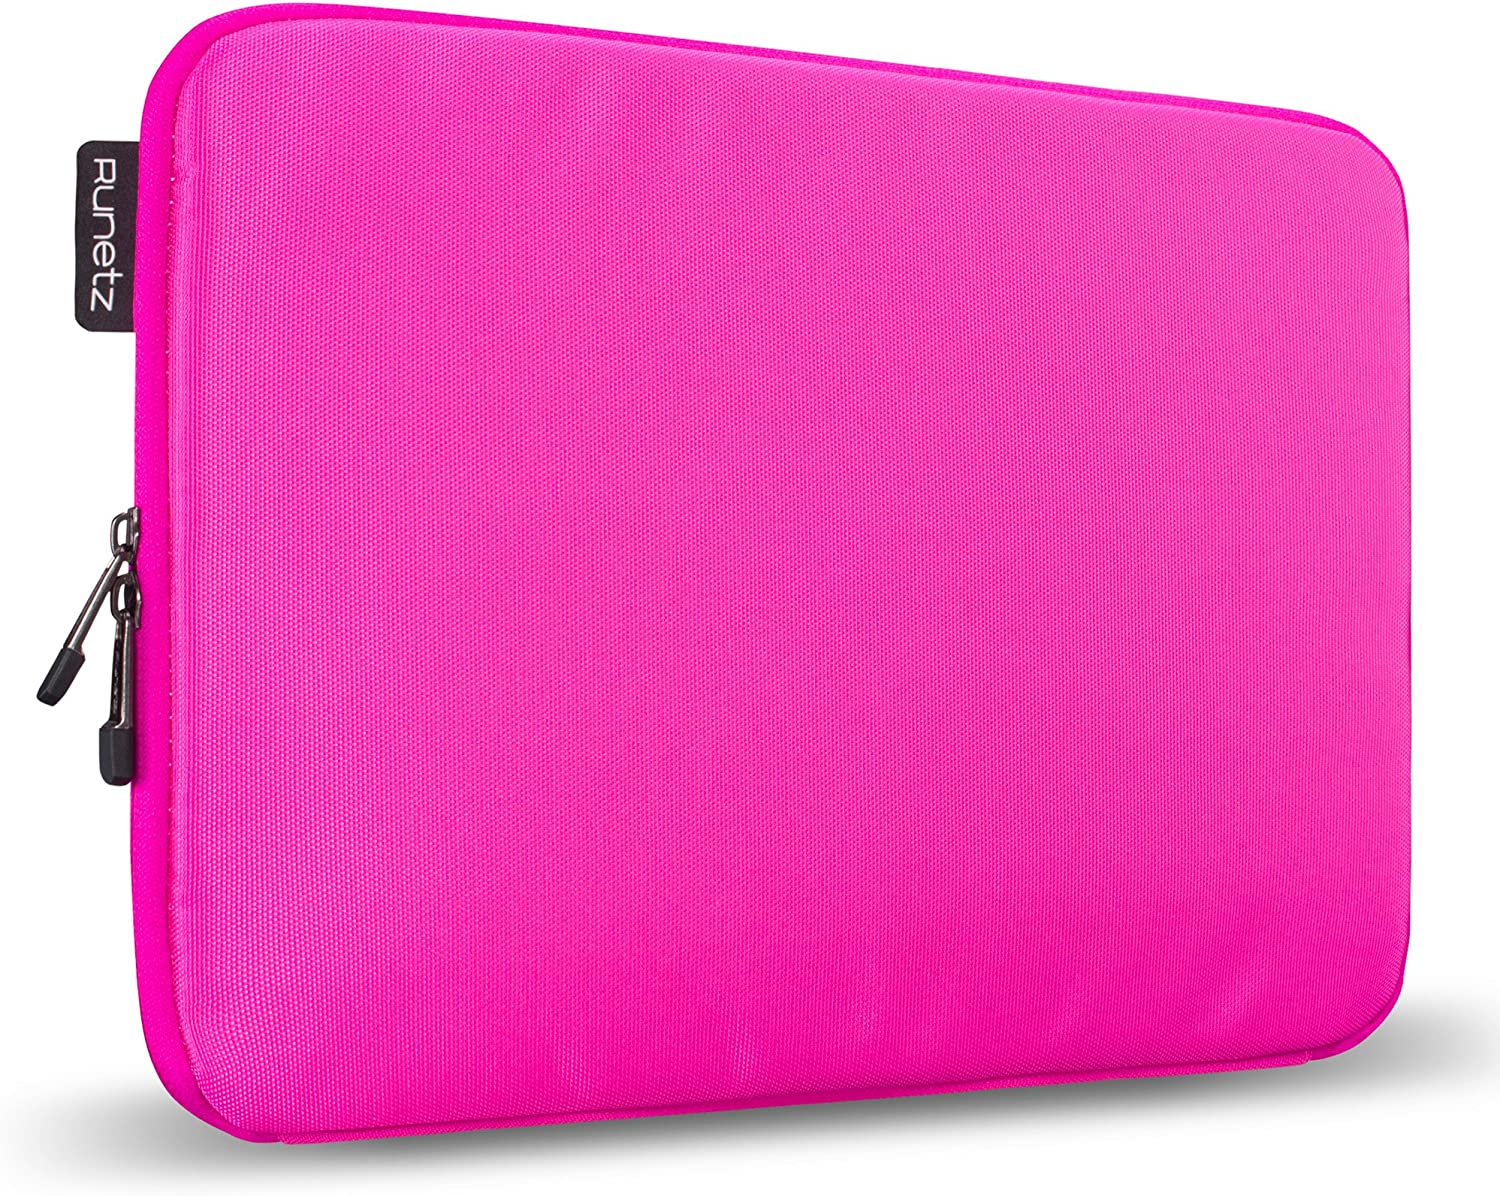 Runetz - MacBook Pro 13 inch Sleeve Soft Laptop Sleeve 13 inch MacBook Air 13 inch Sleeve Notebook Computer Bag Protective Case Cover with Zipper - Pink